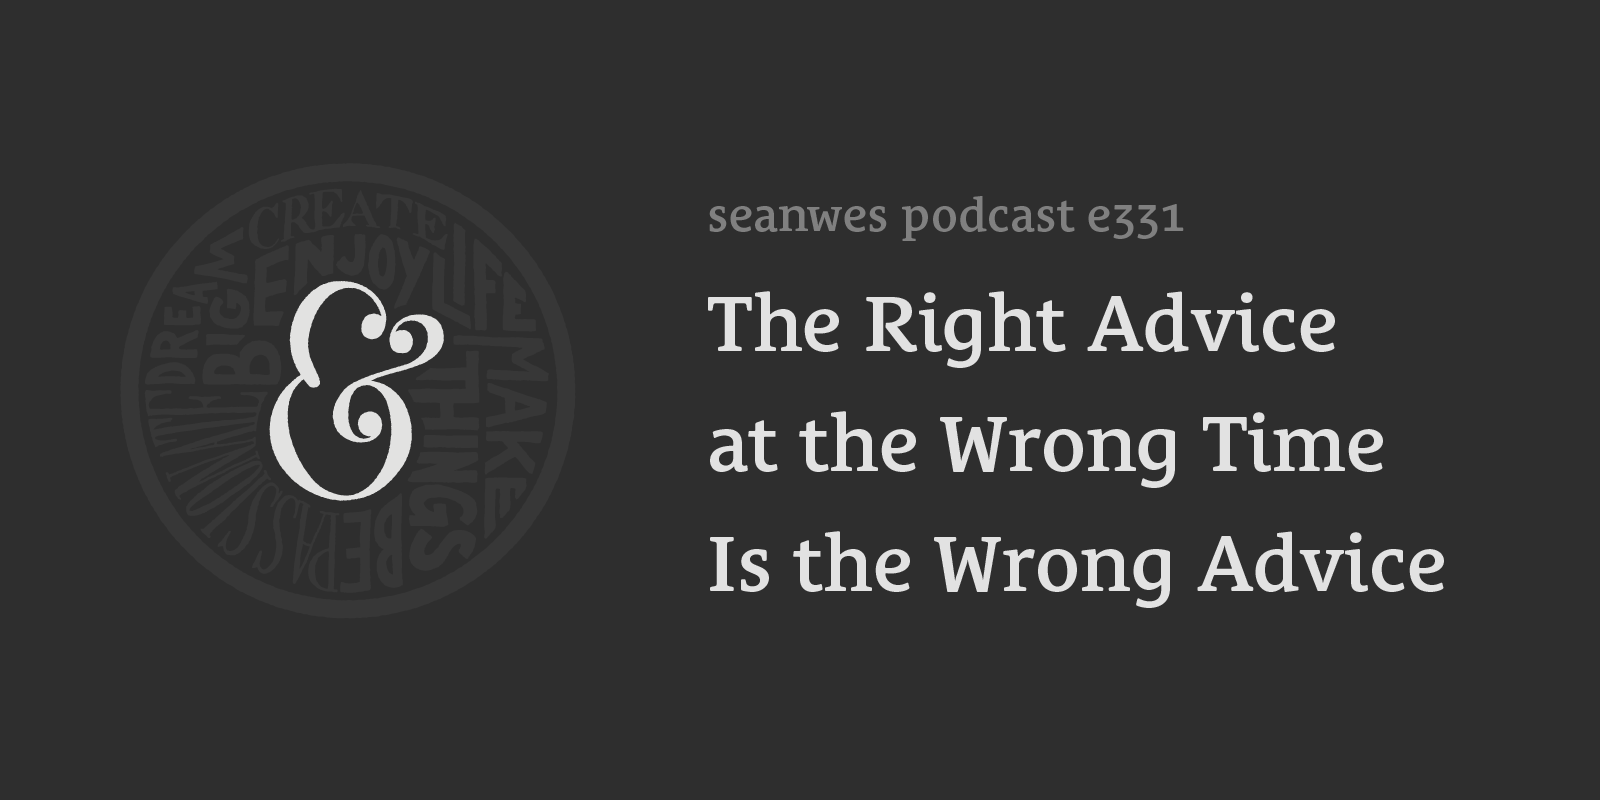 The Right Advice at the Wrong Time Is the Wrong Advice